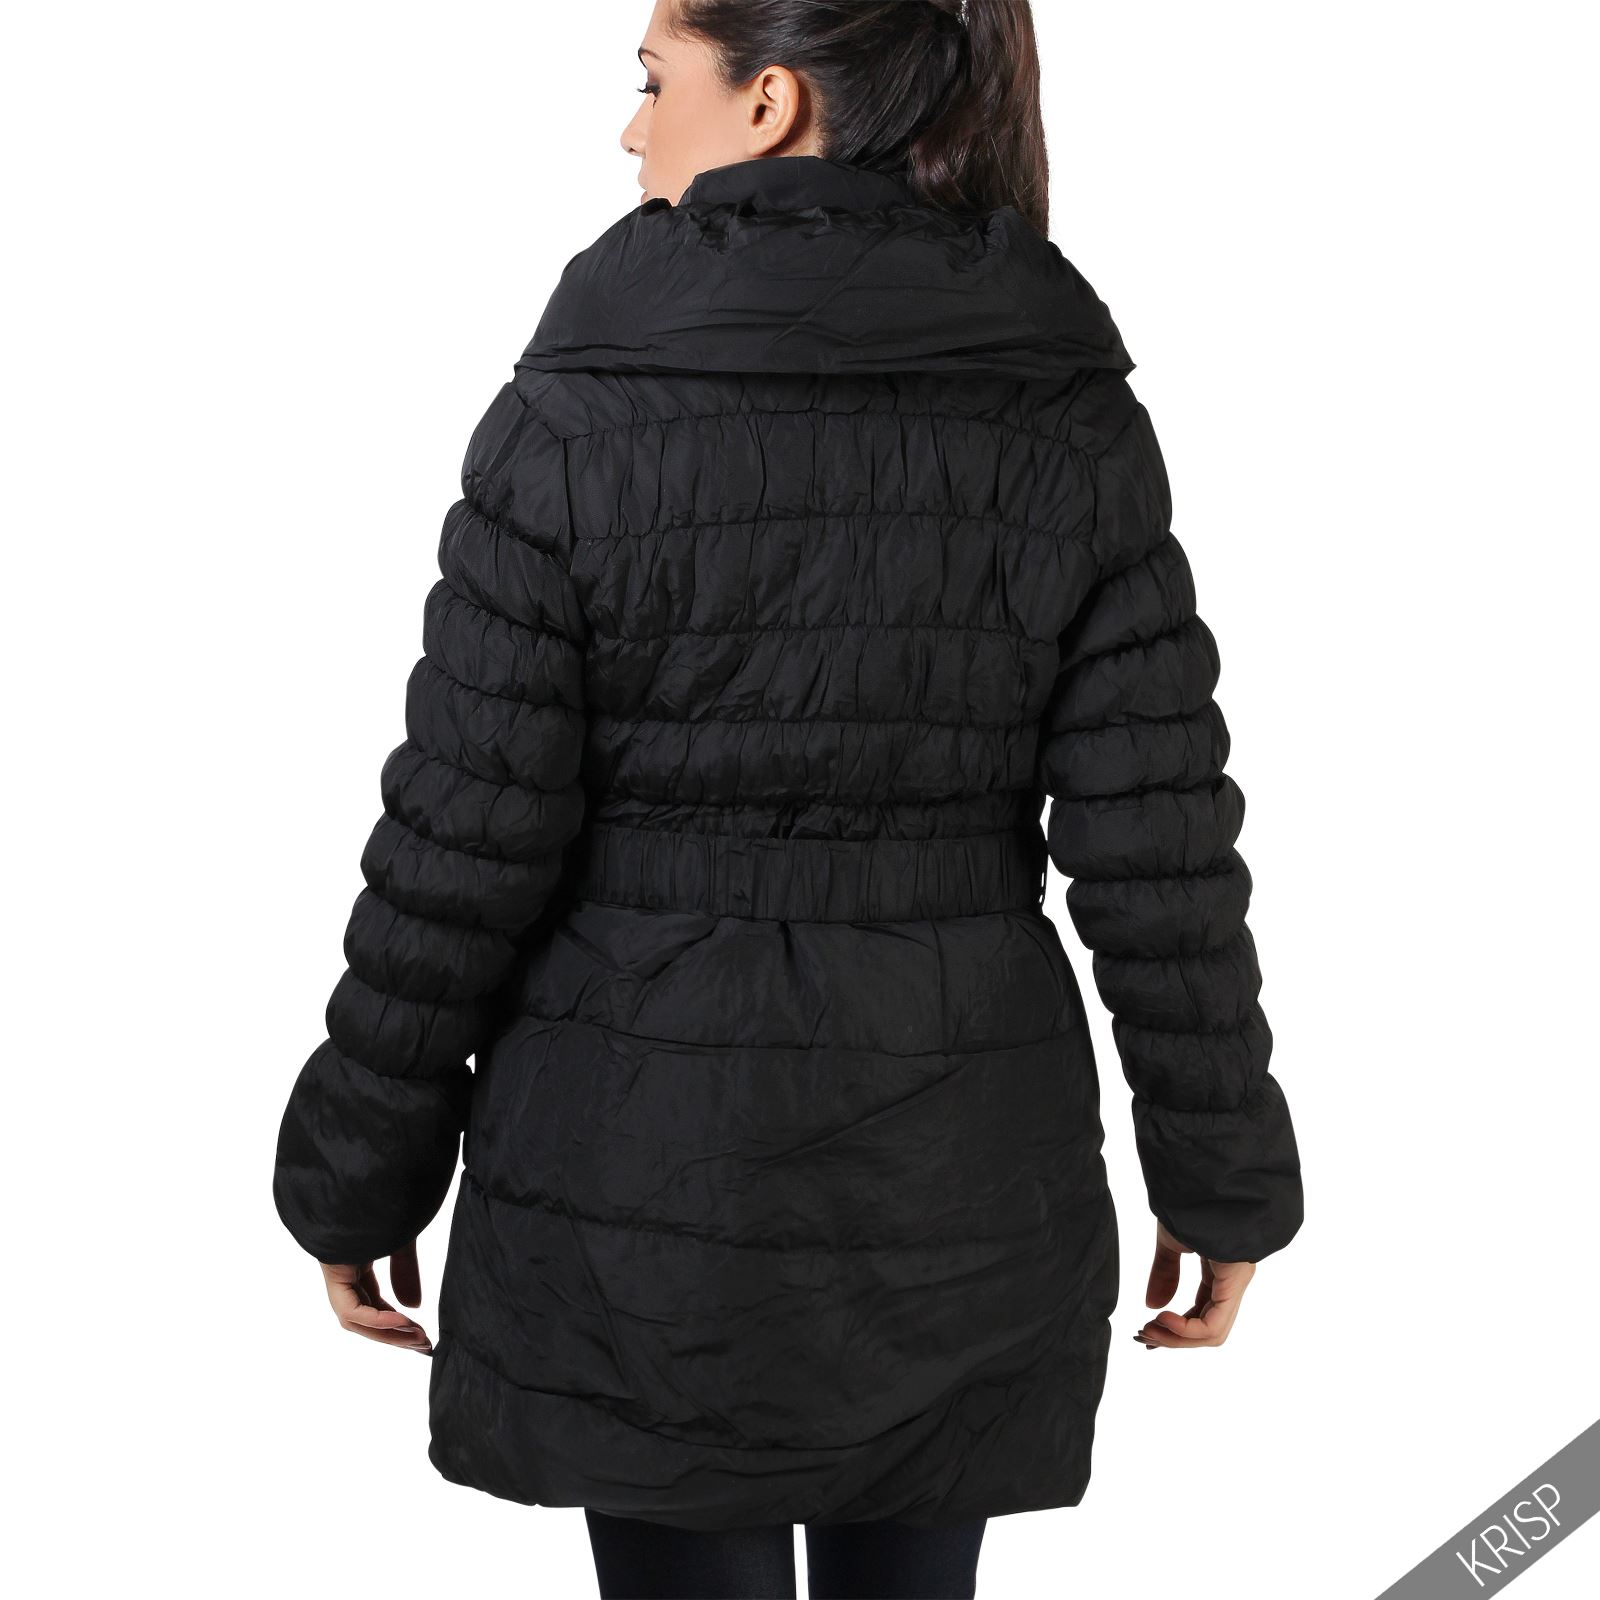 Have a joules quilted coat, gorgeous and warm. Bought last year, was gutted when it was the top teen trend as have wanted one for a few years. Still love it though.